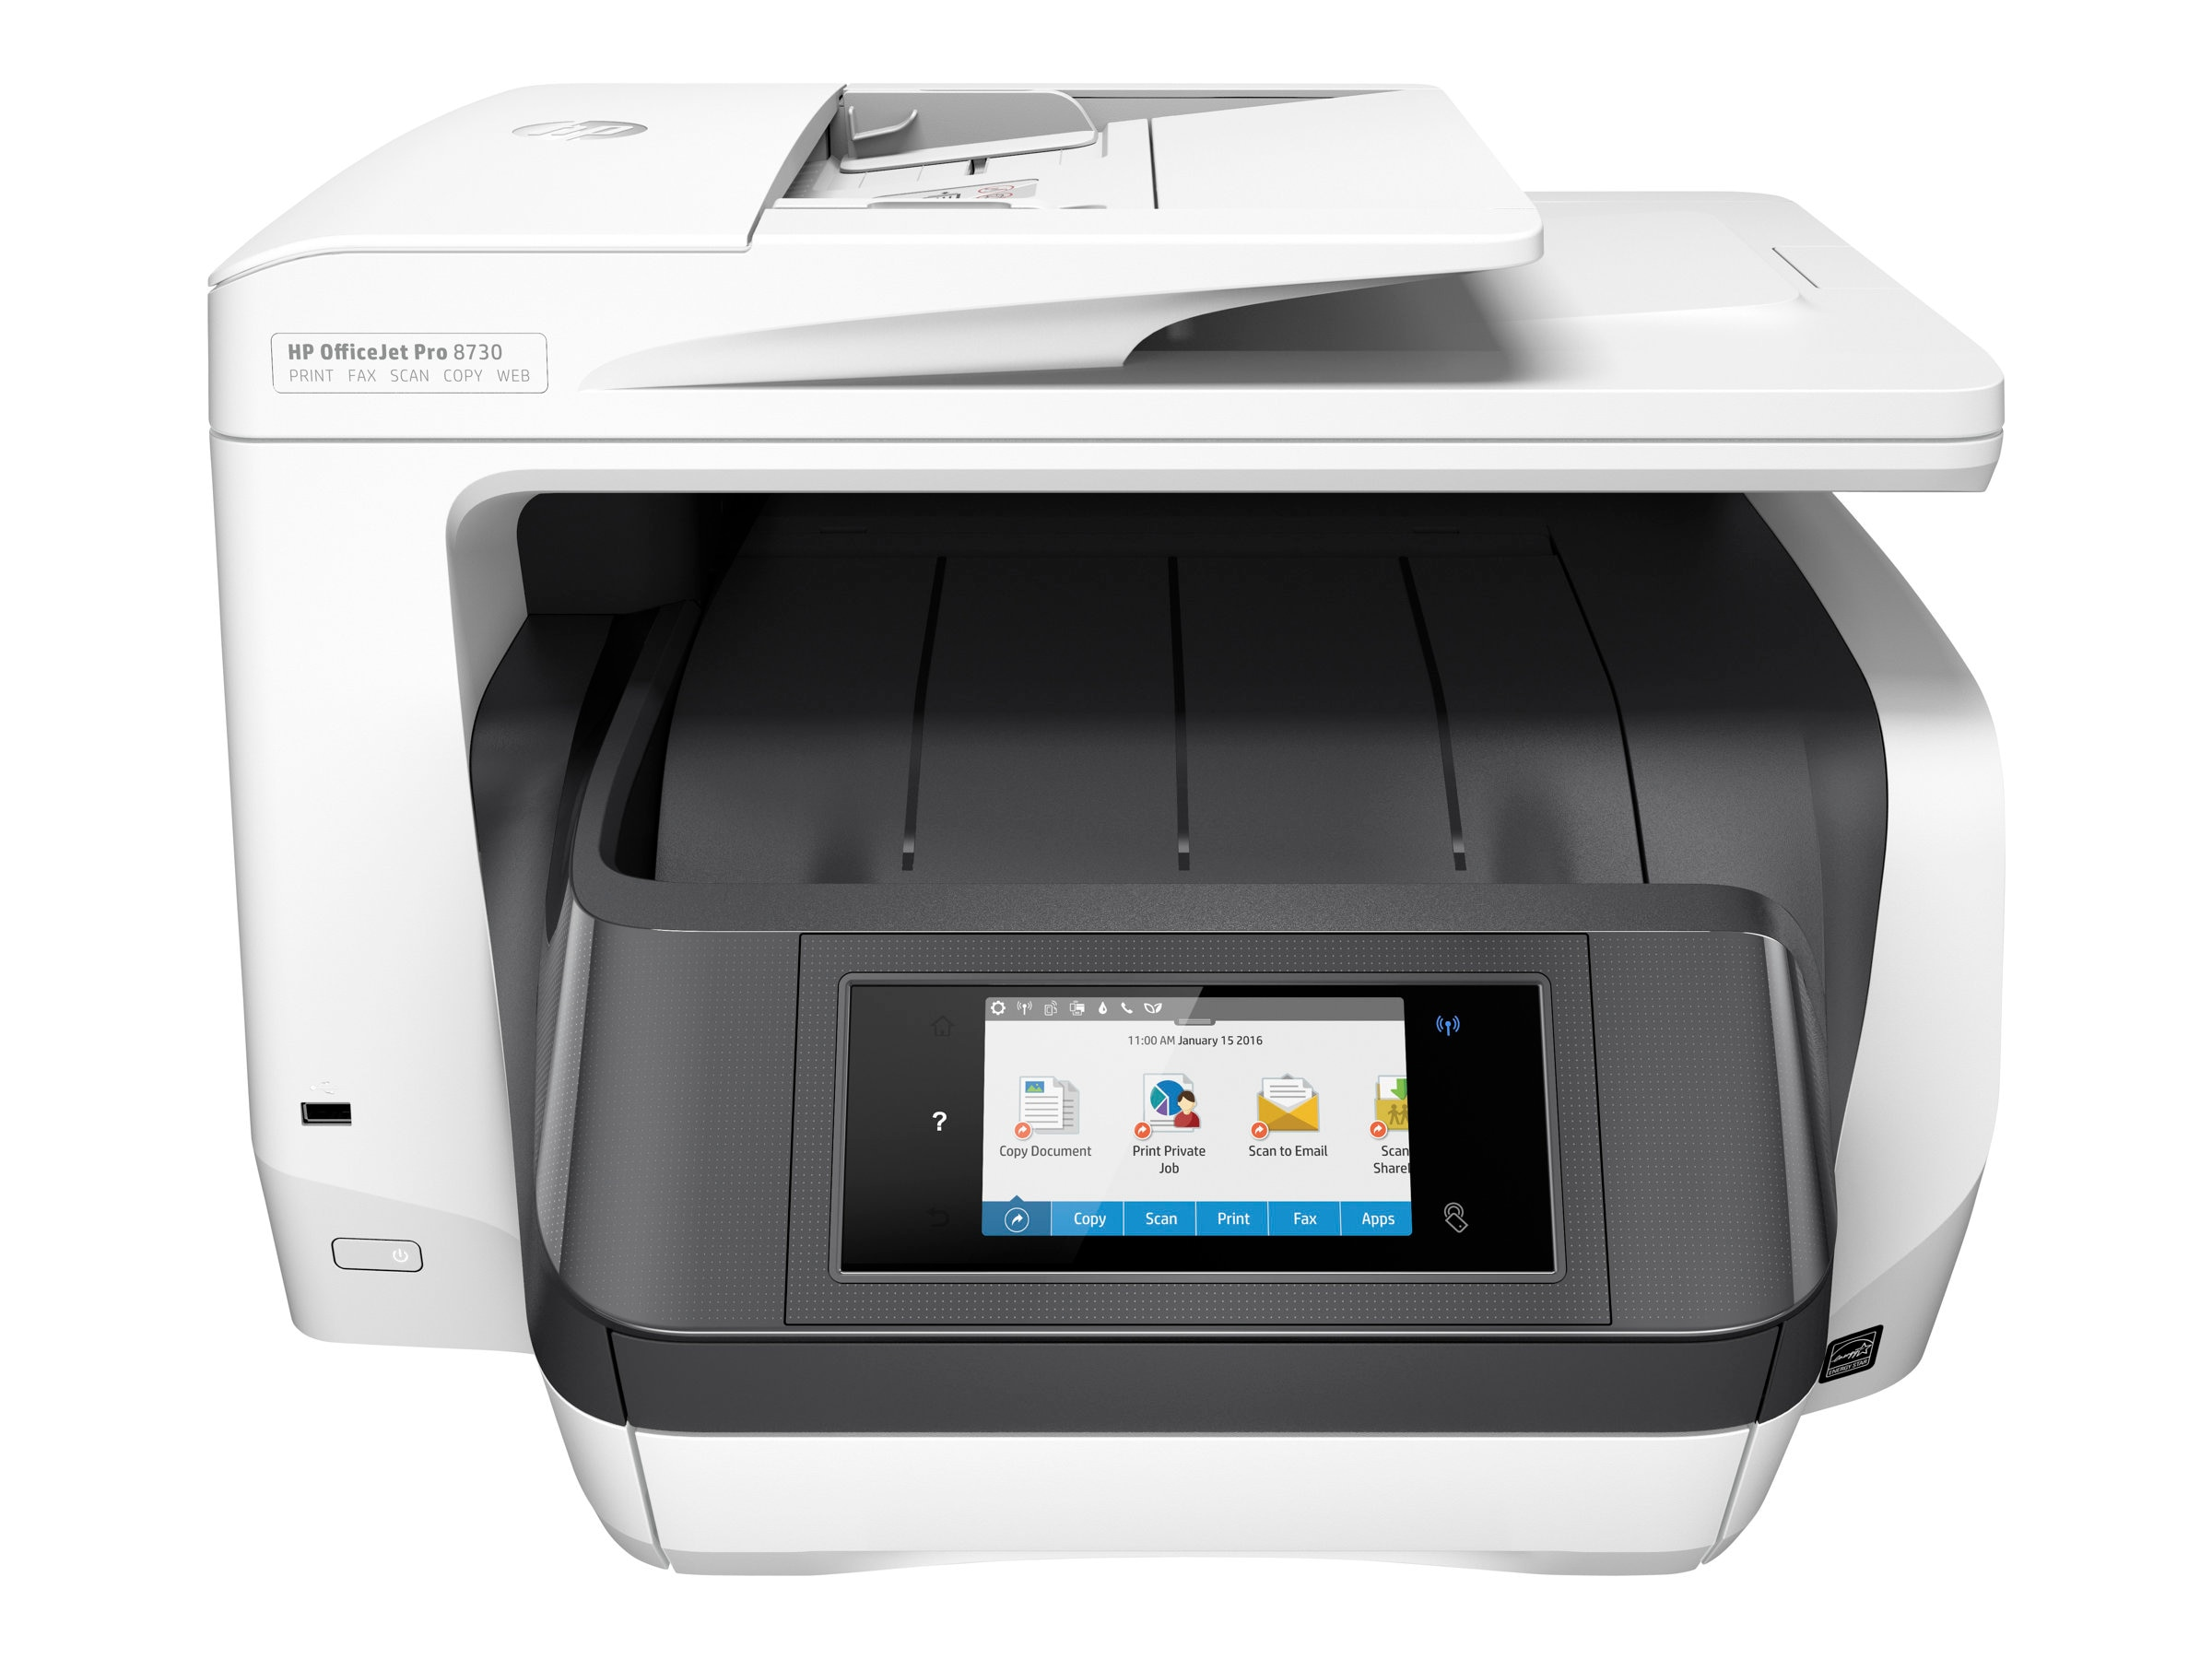 HP Officejet Pro 8730 e-All-in-One Printer, D9L20A#B1H